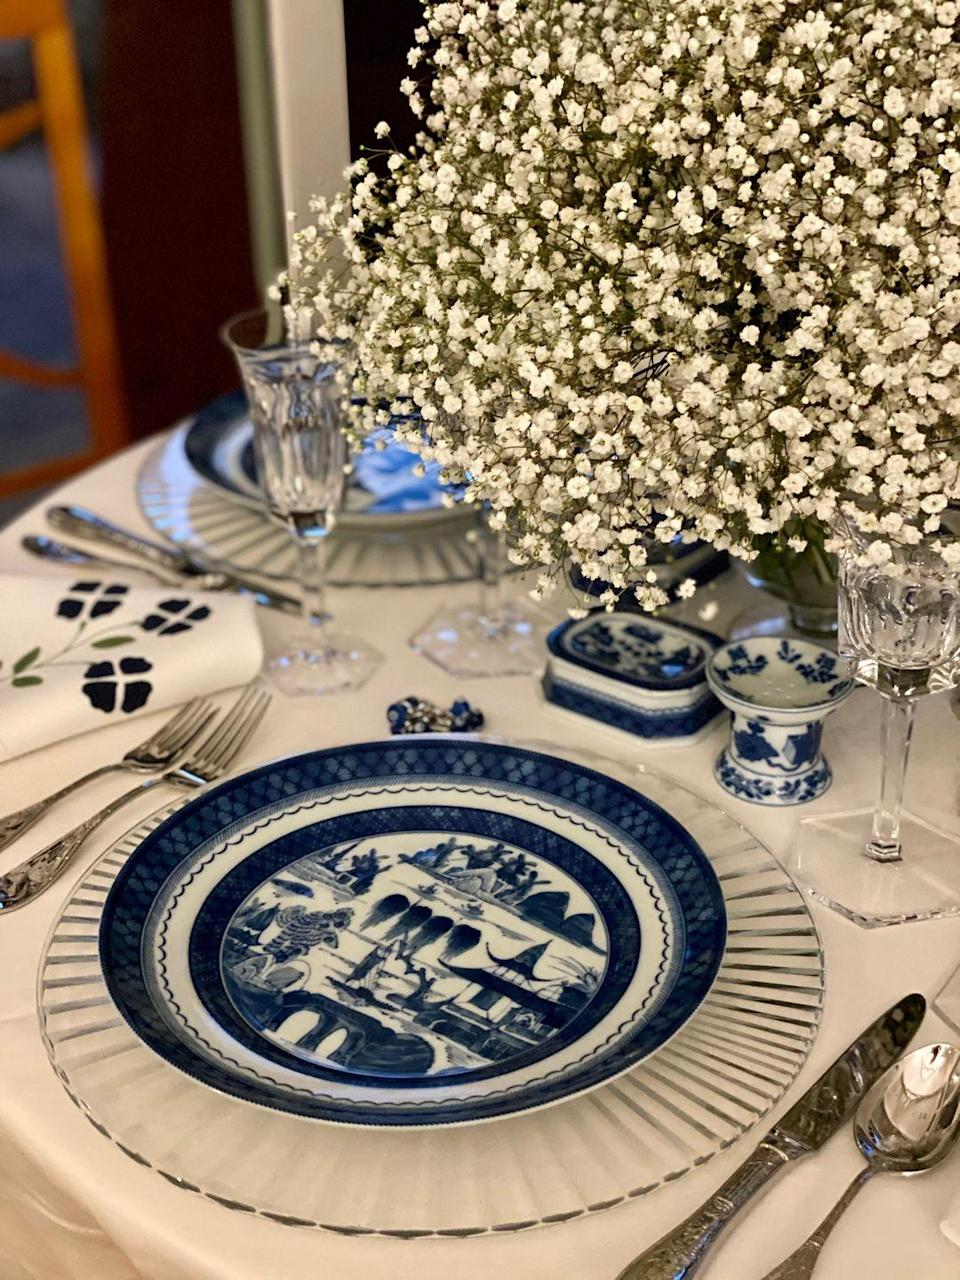 "<p>Simple elegance is the focus of this table designed by hostess extraordinaire <a href=""https://kimberlywhitman.com/"" rel=""nofollow noopener"" target=""_blank"" data-ylk=""slk:Kimberly Schlegal Whitman"" class=""link rapid-noclick-resp"">Kimberly Schlegal Whitman</a>. She says her family has enjoyed taking the time to set the table together throughout the pandemic to keep holidays (and weeknights!) feeling more special. </p><p>Here, Whitman uses her favorite blue-and-white canyon plates with faceted crystal chargers to bring a glamorous New Year's Eve element to the table. <a href=""https://elizabethlake.com/"" rel=""nofollow noopener"" target=""_blank"" data-ylk=""slk:Elizabeth Lake"" class=""link rapid-noclick-resp"">Elizabeth Lake</a> linens and <a href=""https://www.moser.com/"" rel=""nofollow noopener"" target=""_blank"" data-ylk=""slk:Moser"" class=""link rapid-noclick-resp"">Moser</a> crystal glassware bring an extra element of elevation. She also plans to include some table favors for a fun surprise. </p>"